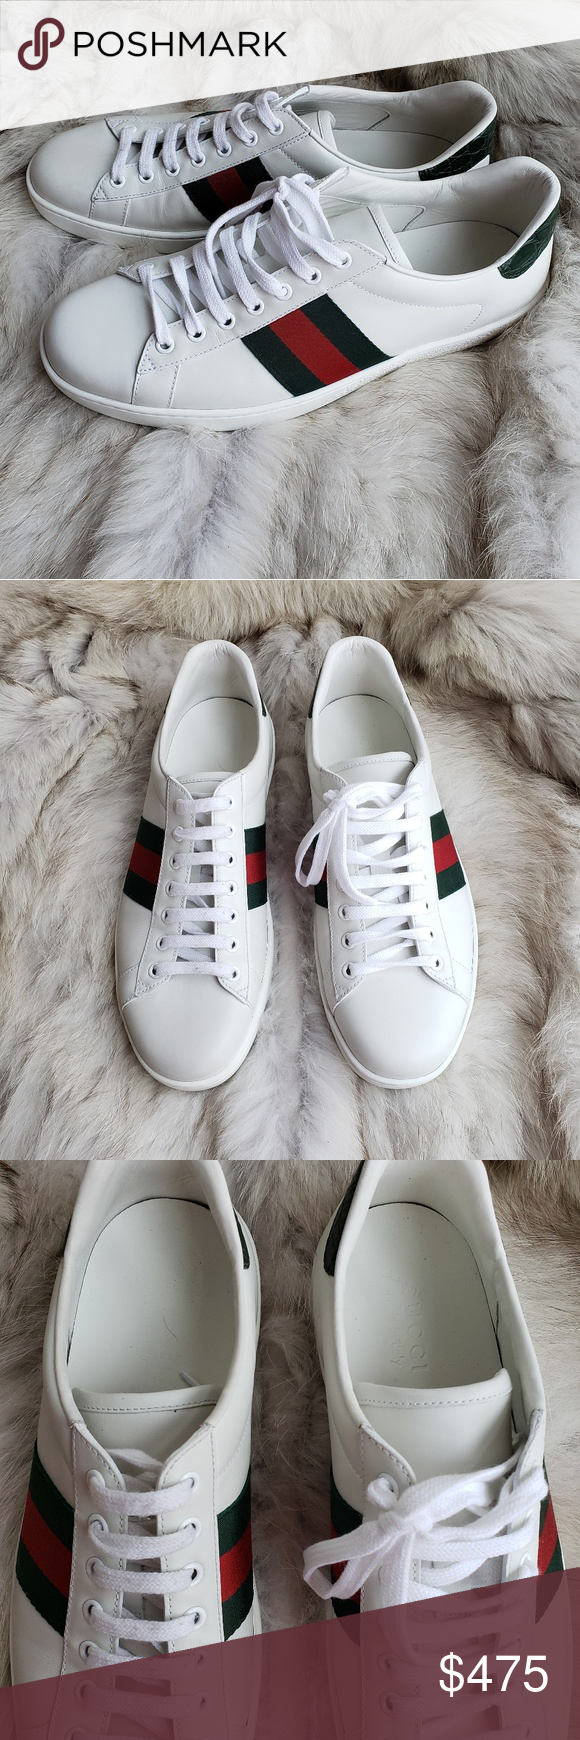 66ea1cc0e Gucci Ace Stripe White Leather Sneaker 8.5 9.5 These are in excellent used  condition. No box or bag. Guaranteed authentic. These are an 8.5 in gucci  sizing ...